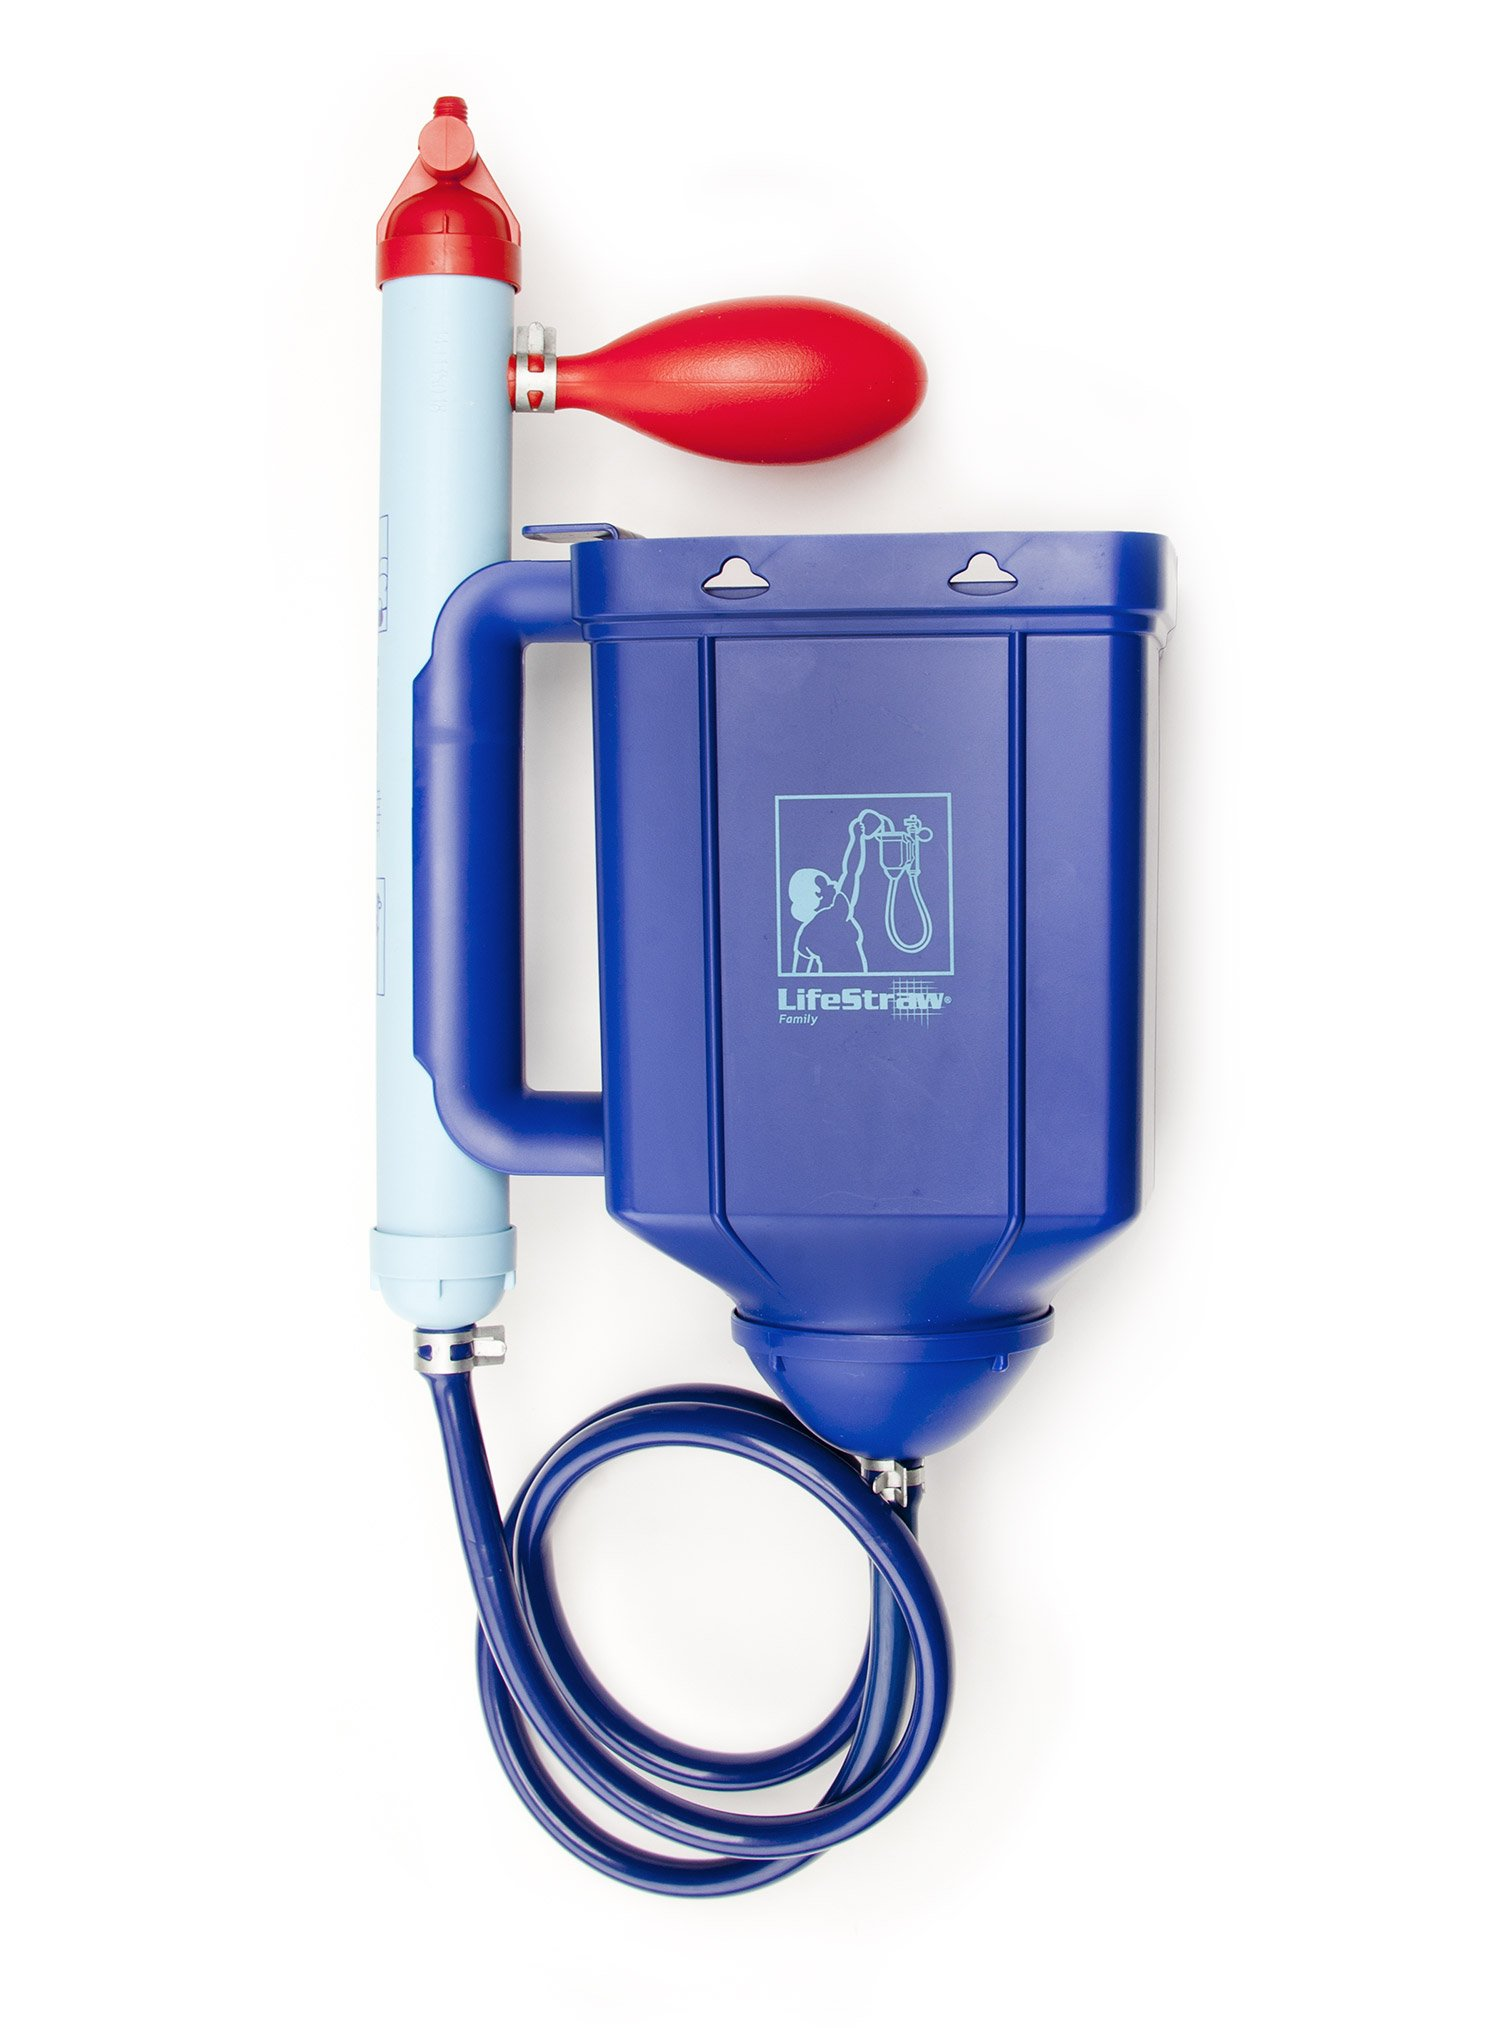 LifeStraw Family 1.0 Portable Water Filter